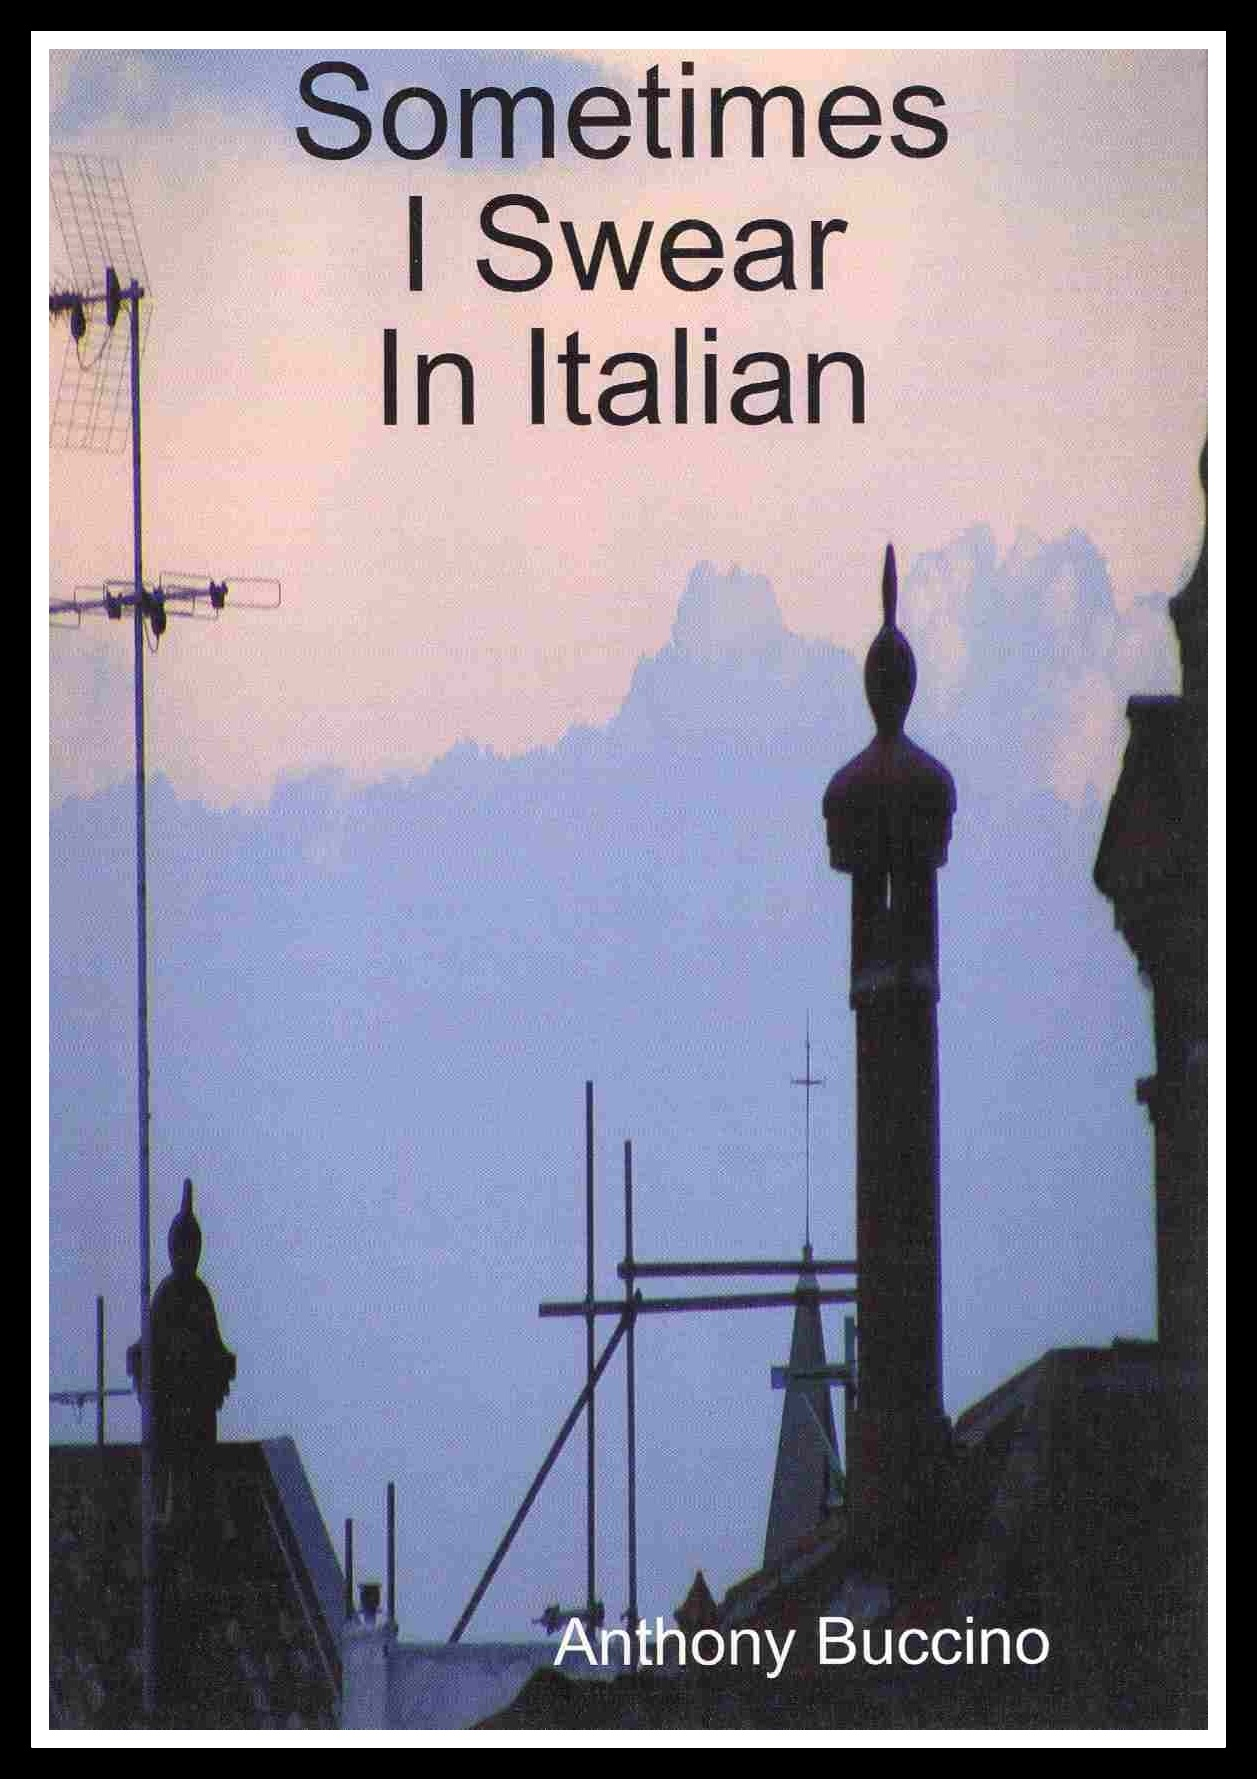 Sometimes I Swear In Italian by Anthony Buccino